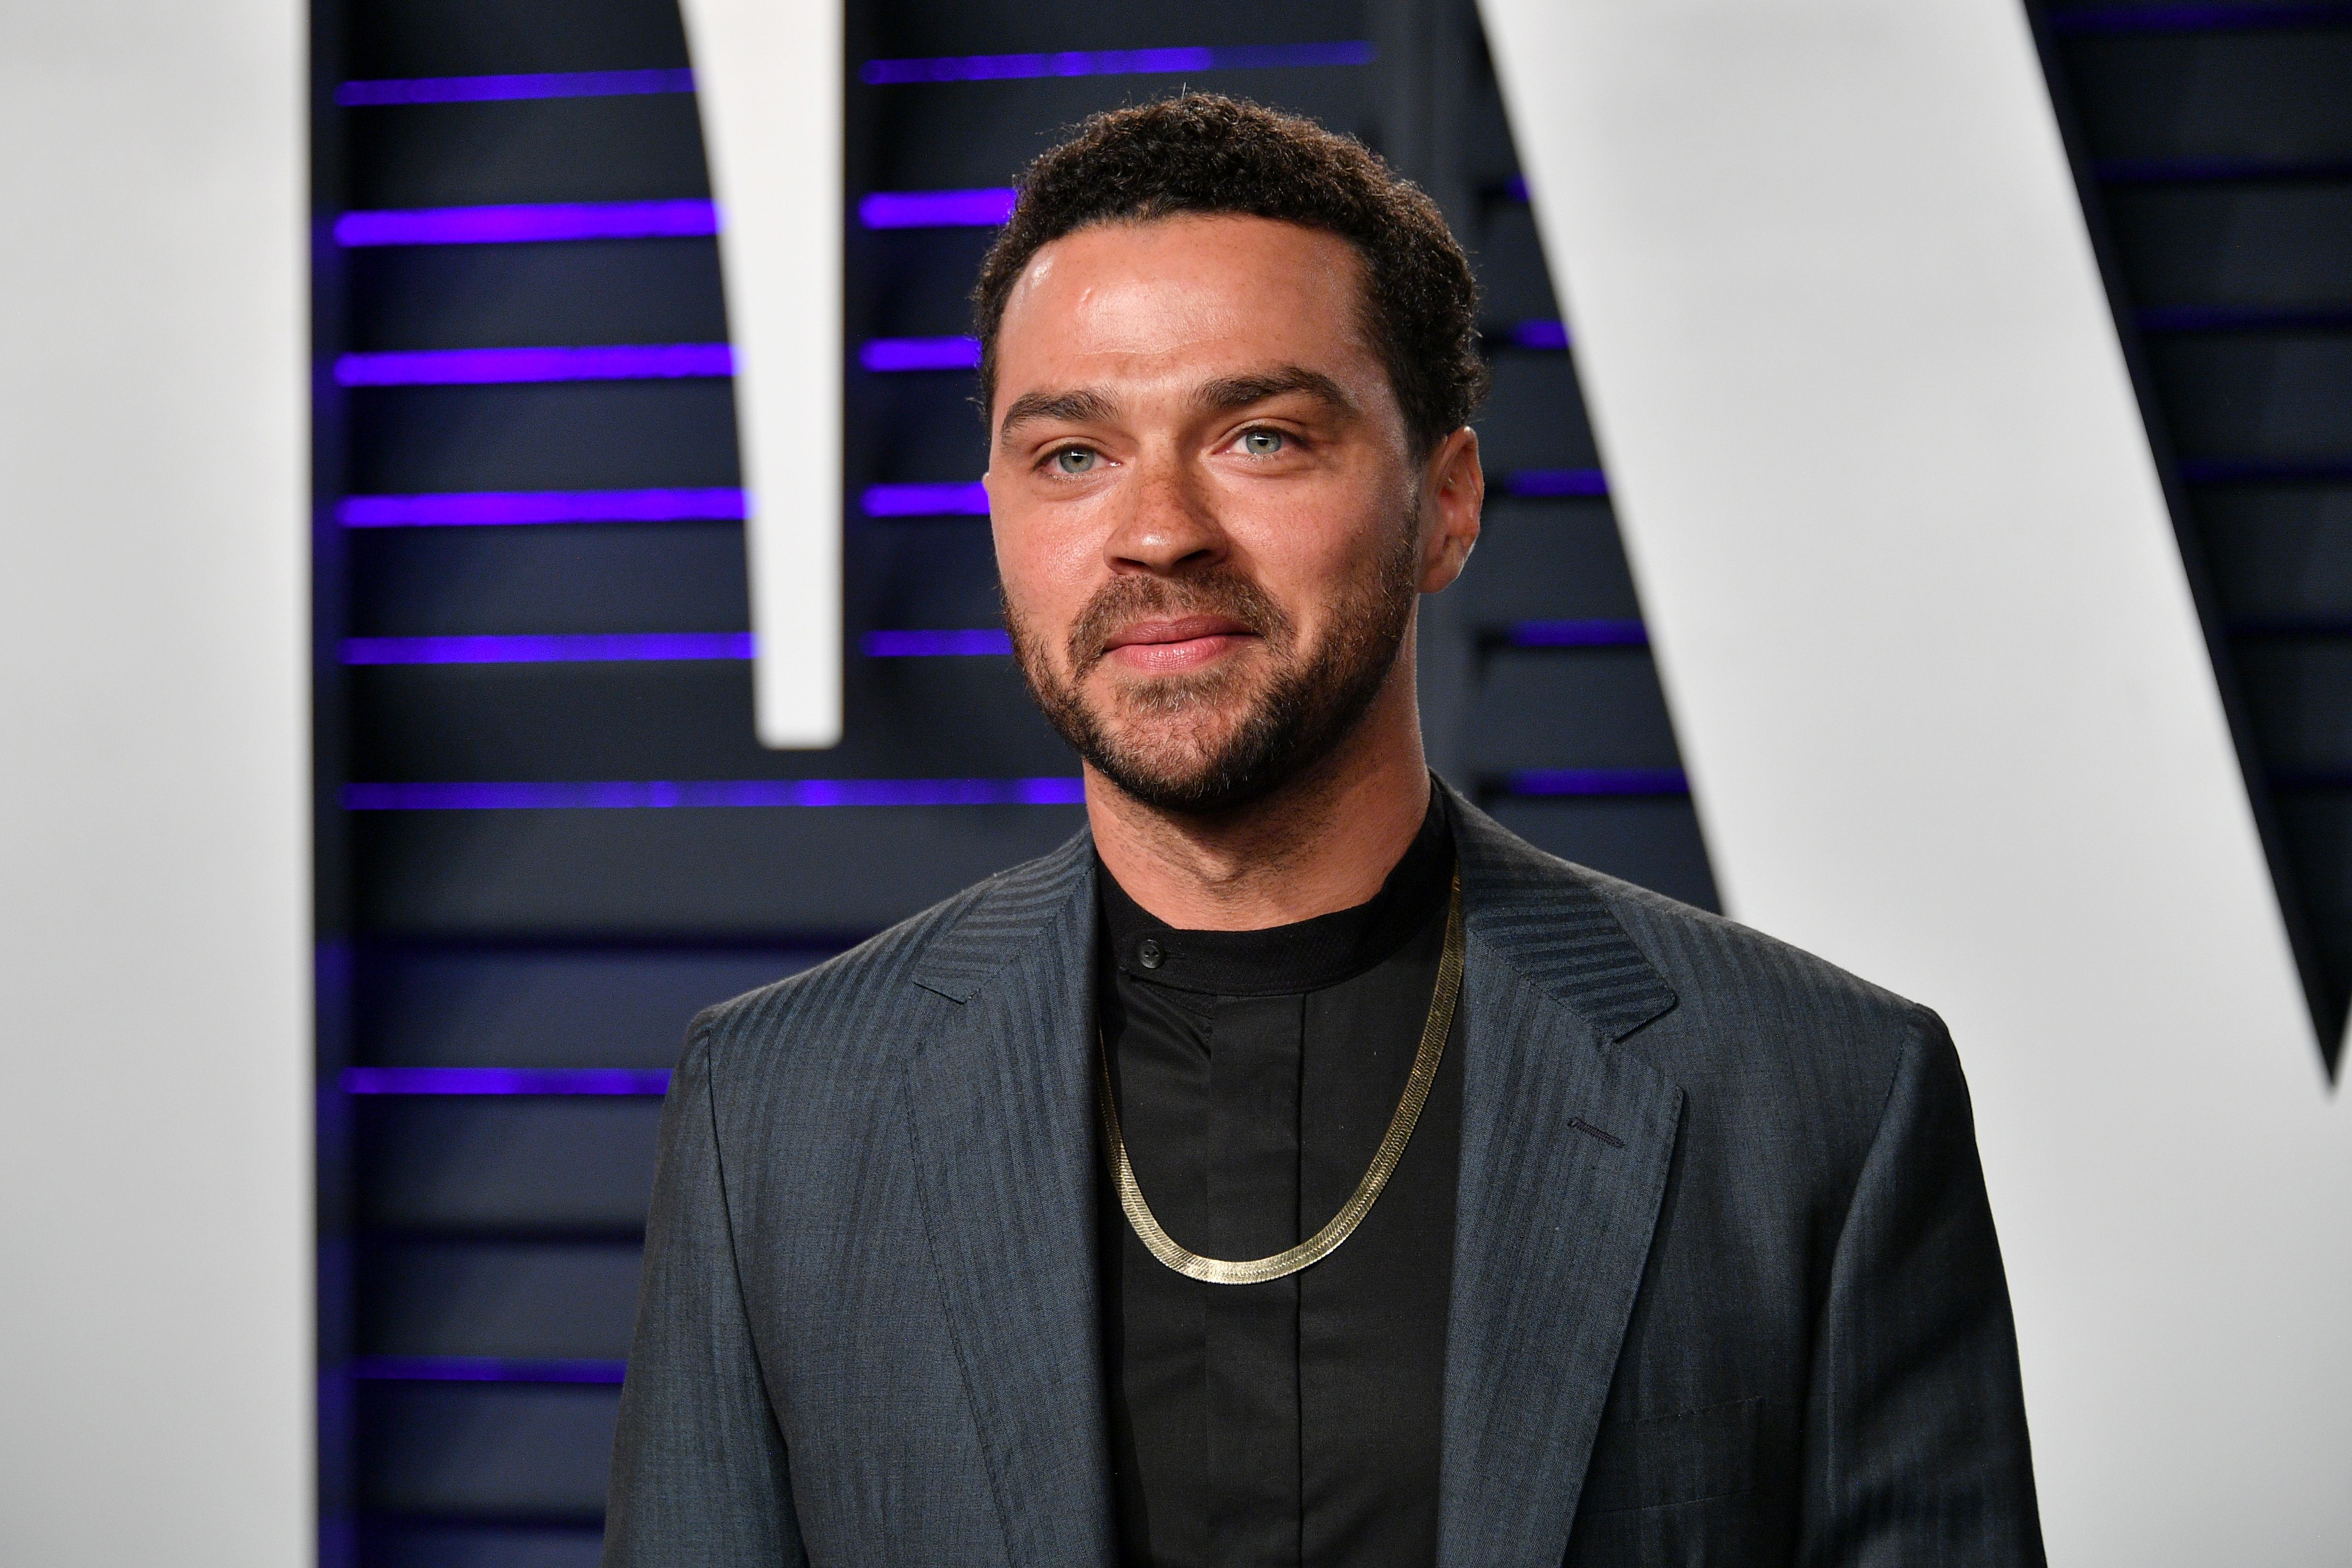 Jesse Williams at the Vanity Fair Oscar Party at Wallis Annenberg Center for the Performing Arts on February 24, 2019, in Beverly Hills, California | Photo: Dia Dipasupil/Getty Images